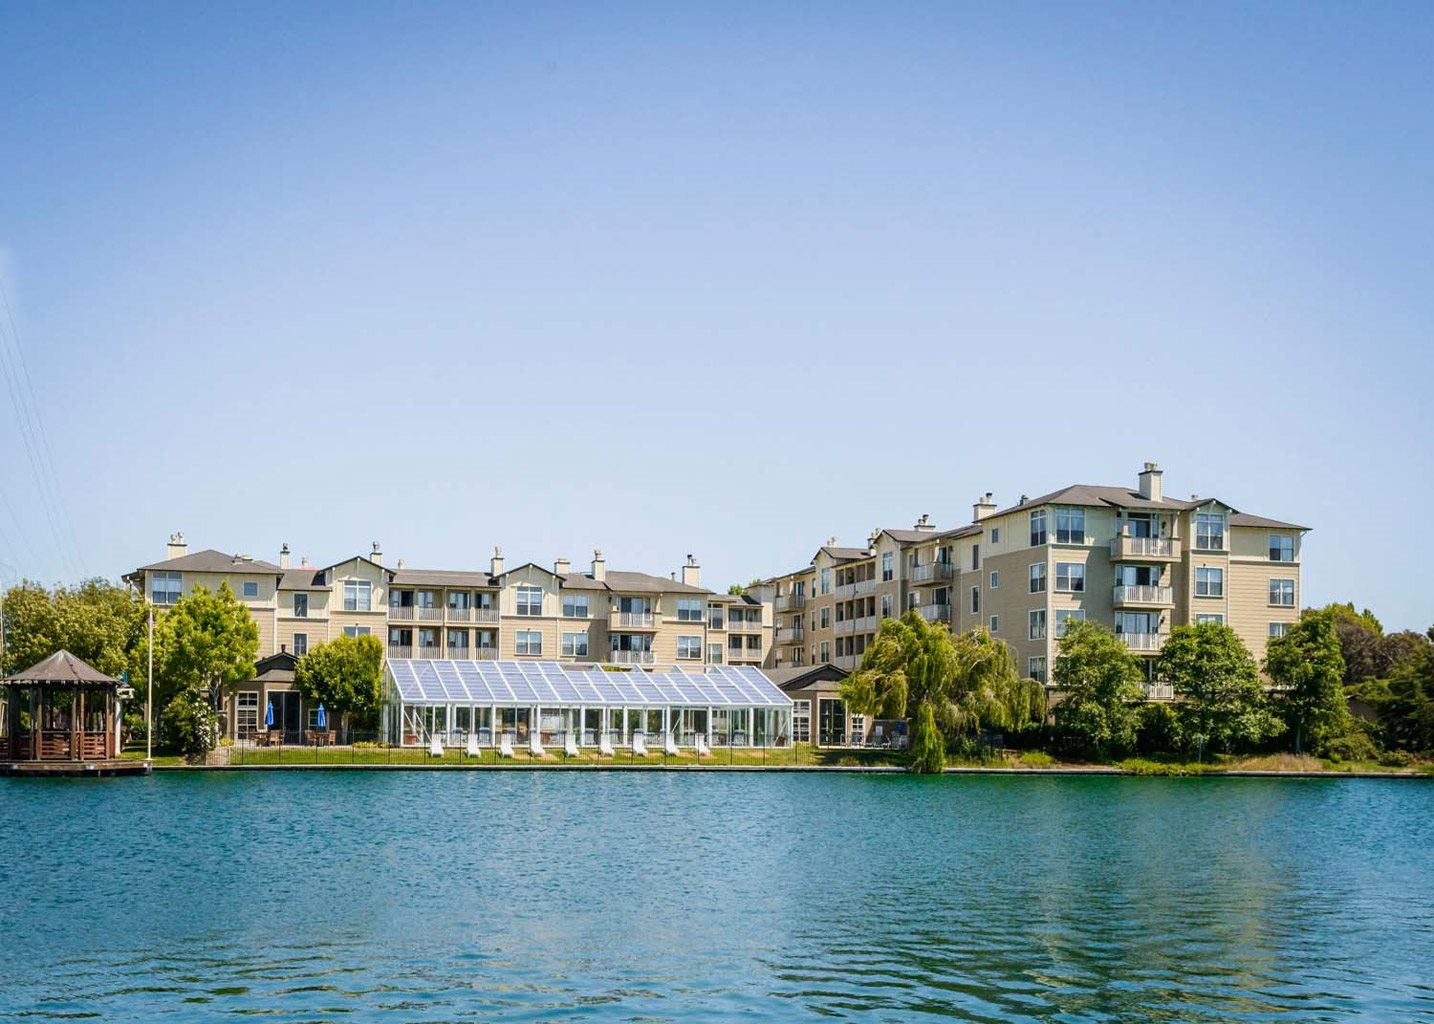 Map and Directions to Marlin Cove in Foster City, CA